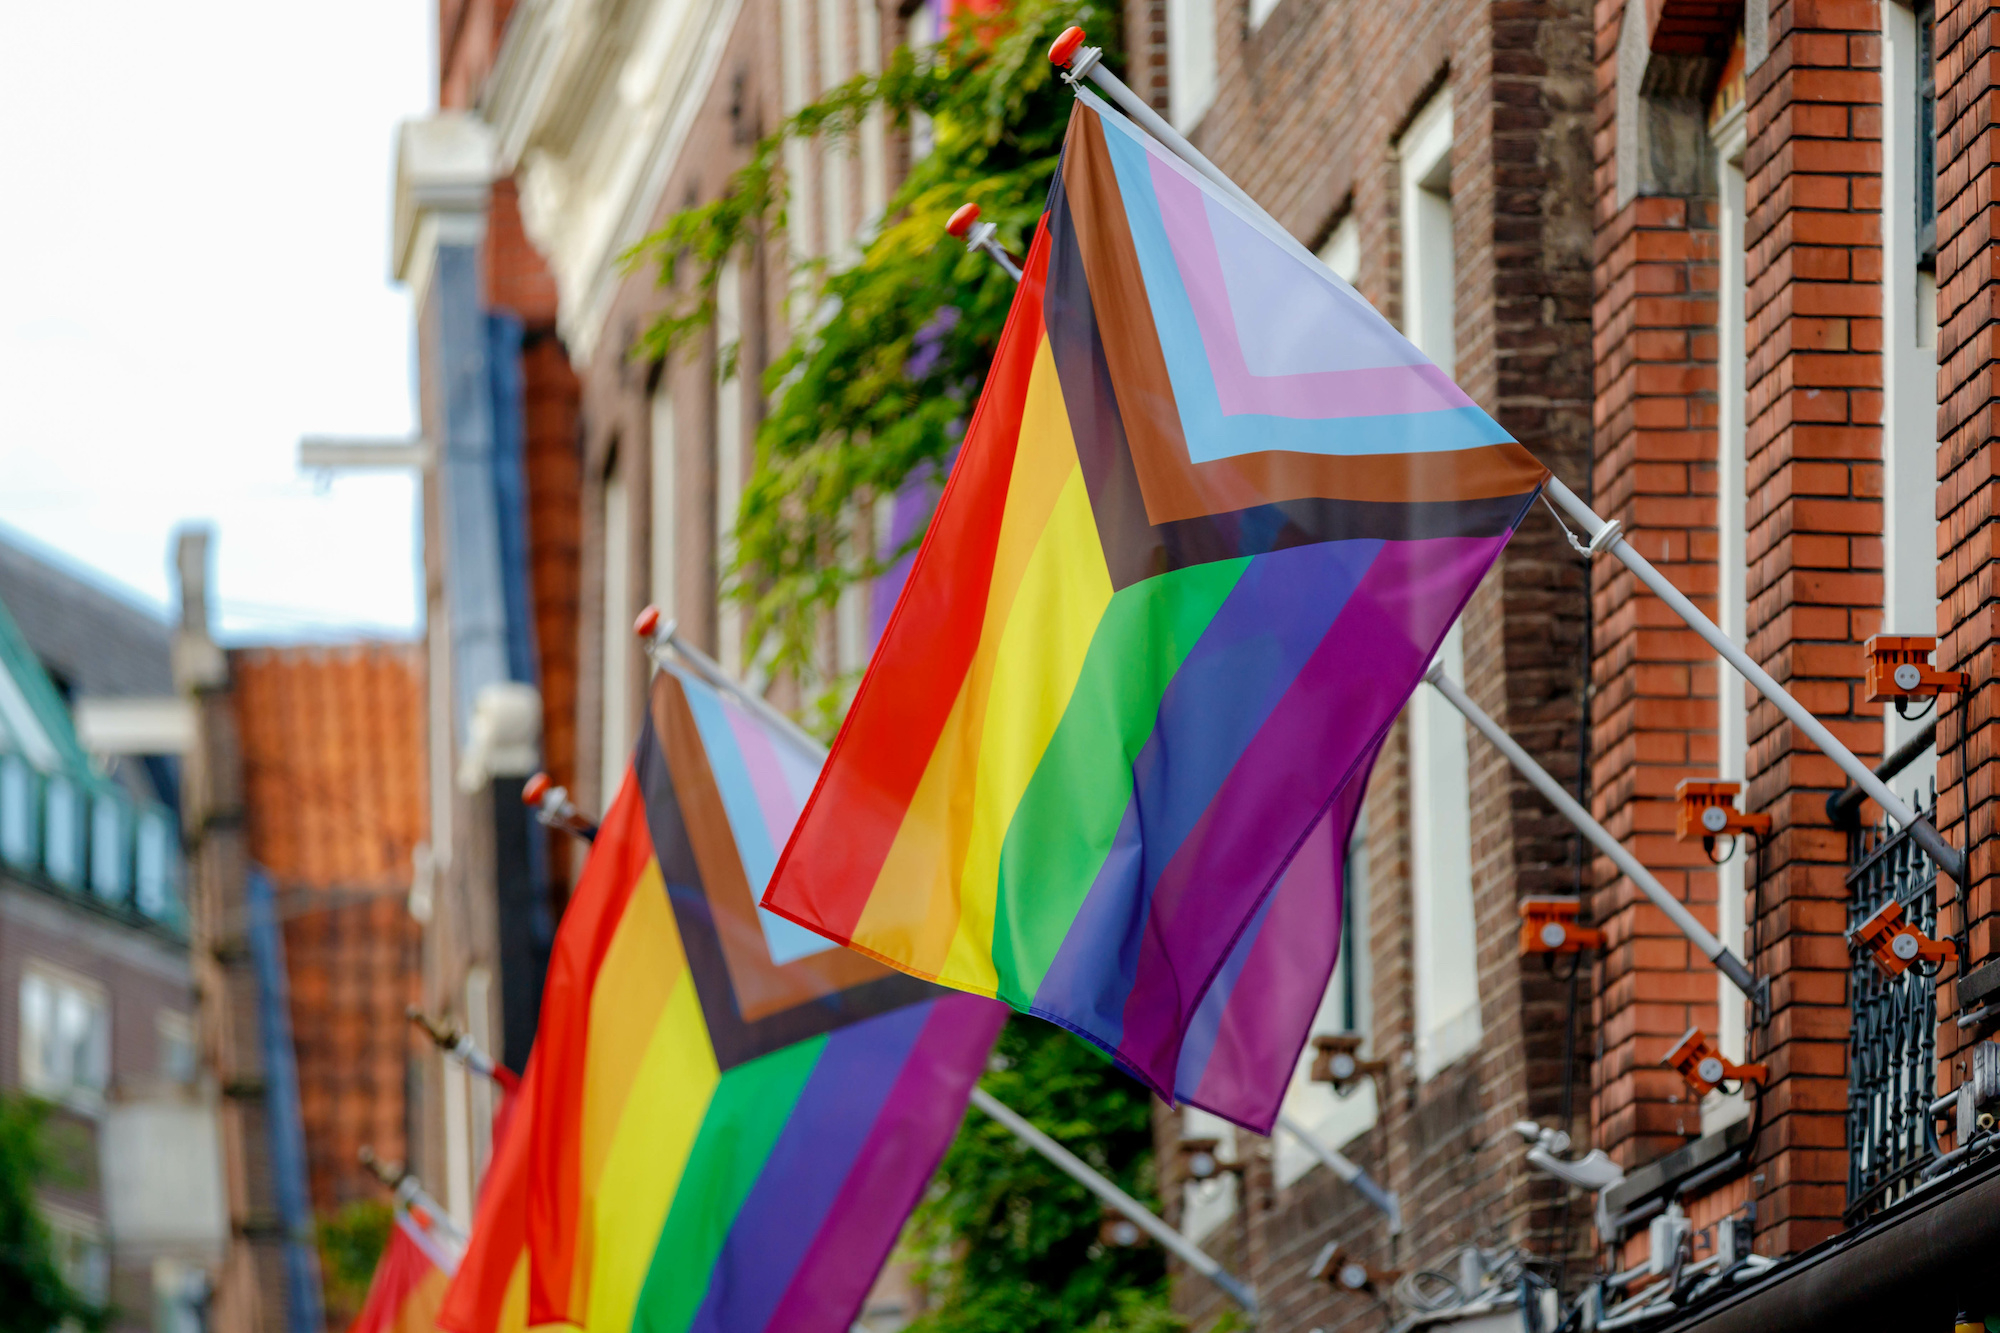 Progress Pride flags waving in the air from the side of a brick building